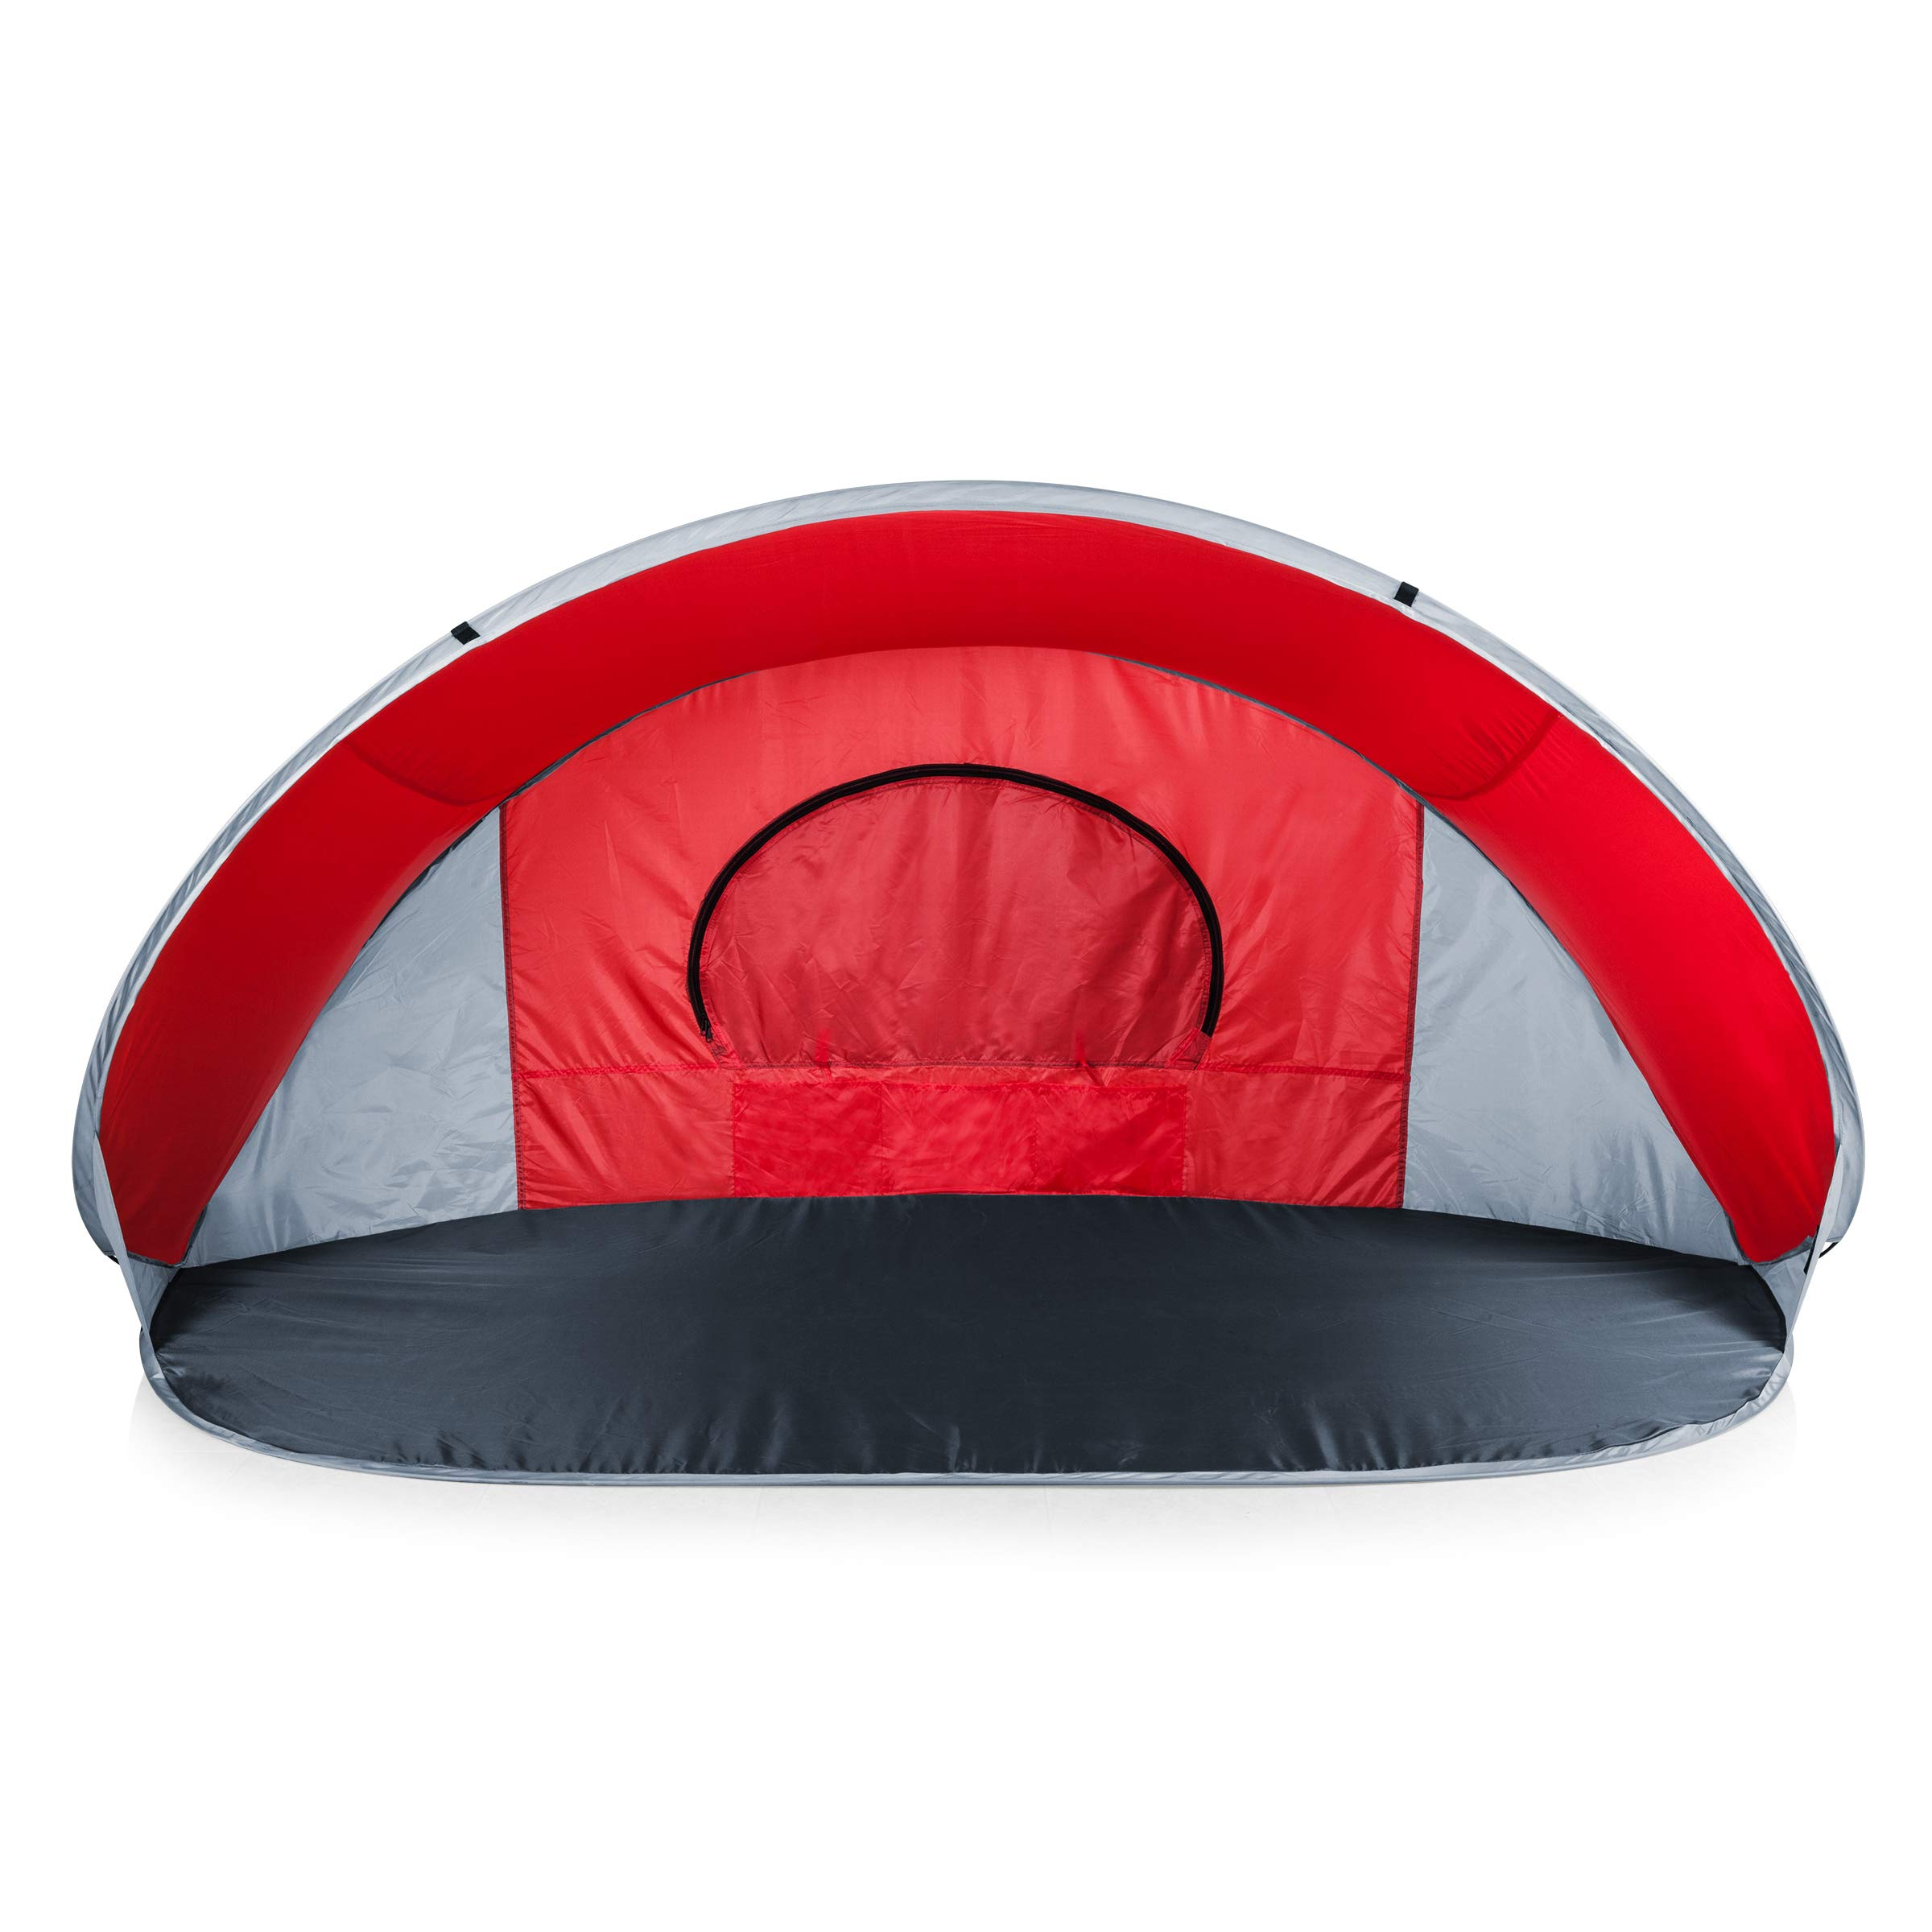 ONIVA - a Picnic Time Brand Manta Portable Pop-Up Sun/Wind Shelter, Red by ONIVA - a Picnic Time brand